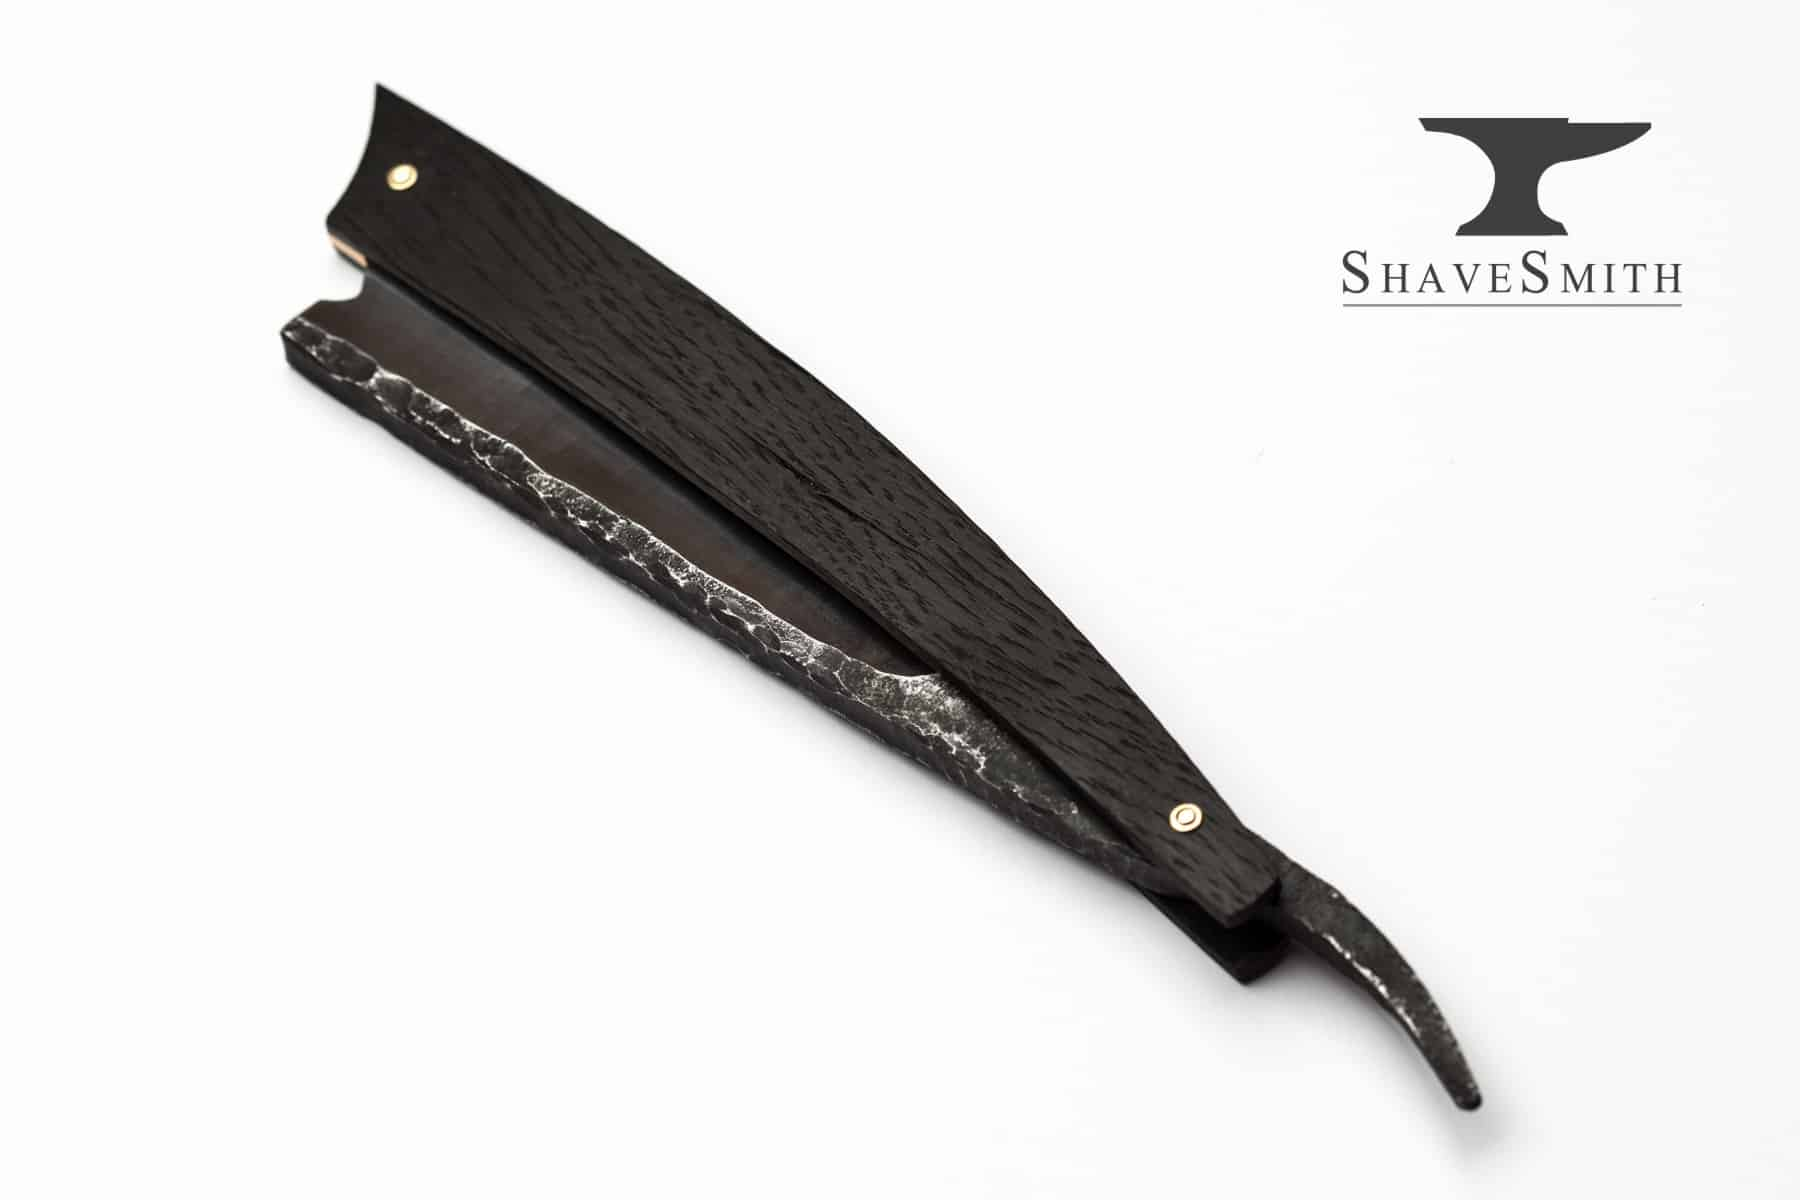 A handmade custom straight razor with ancient bogwood handles, bronze scales, and egravings of galic and nordic origin.